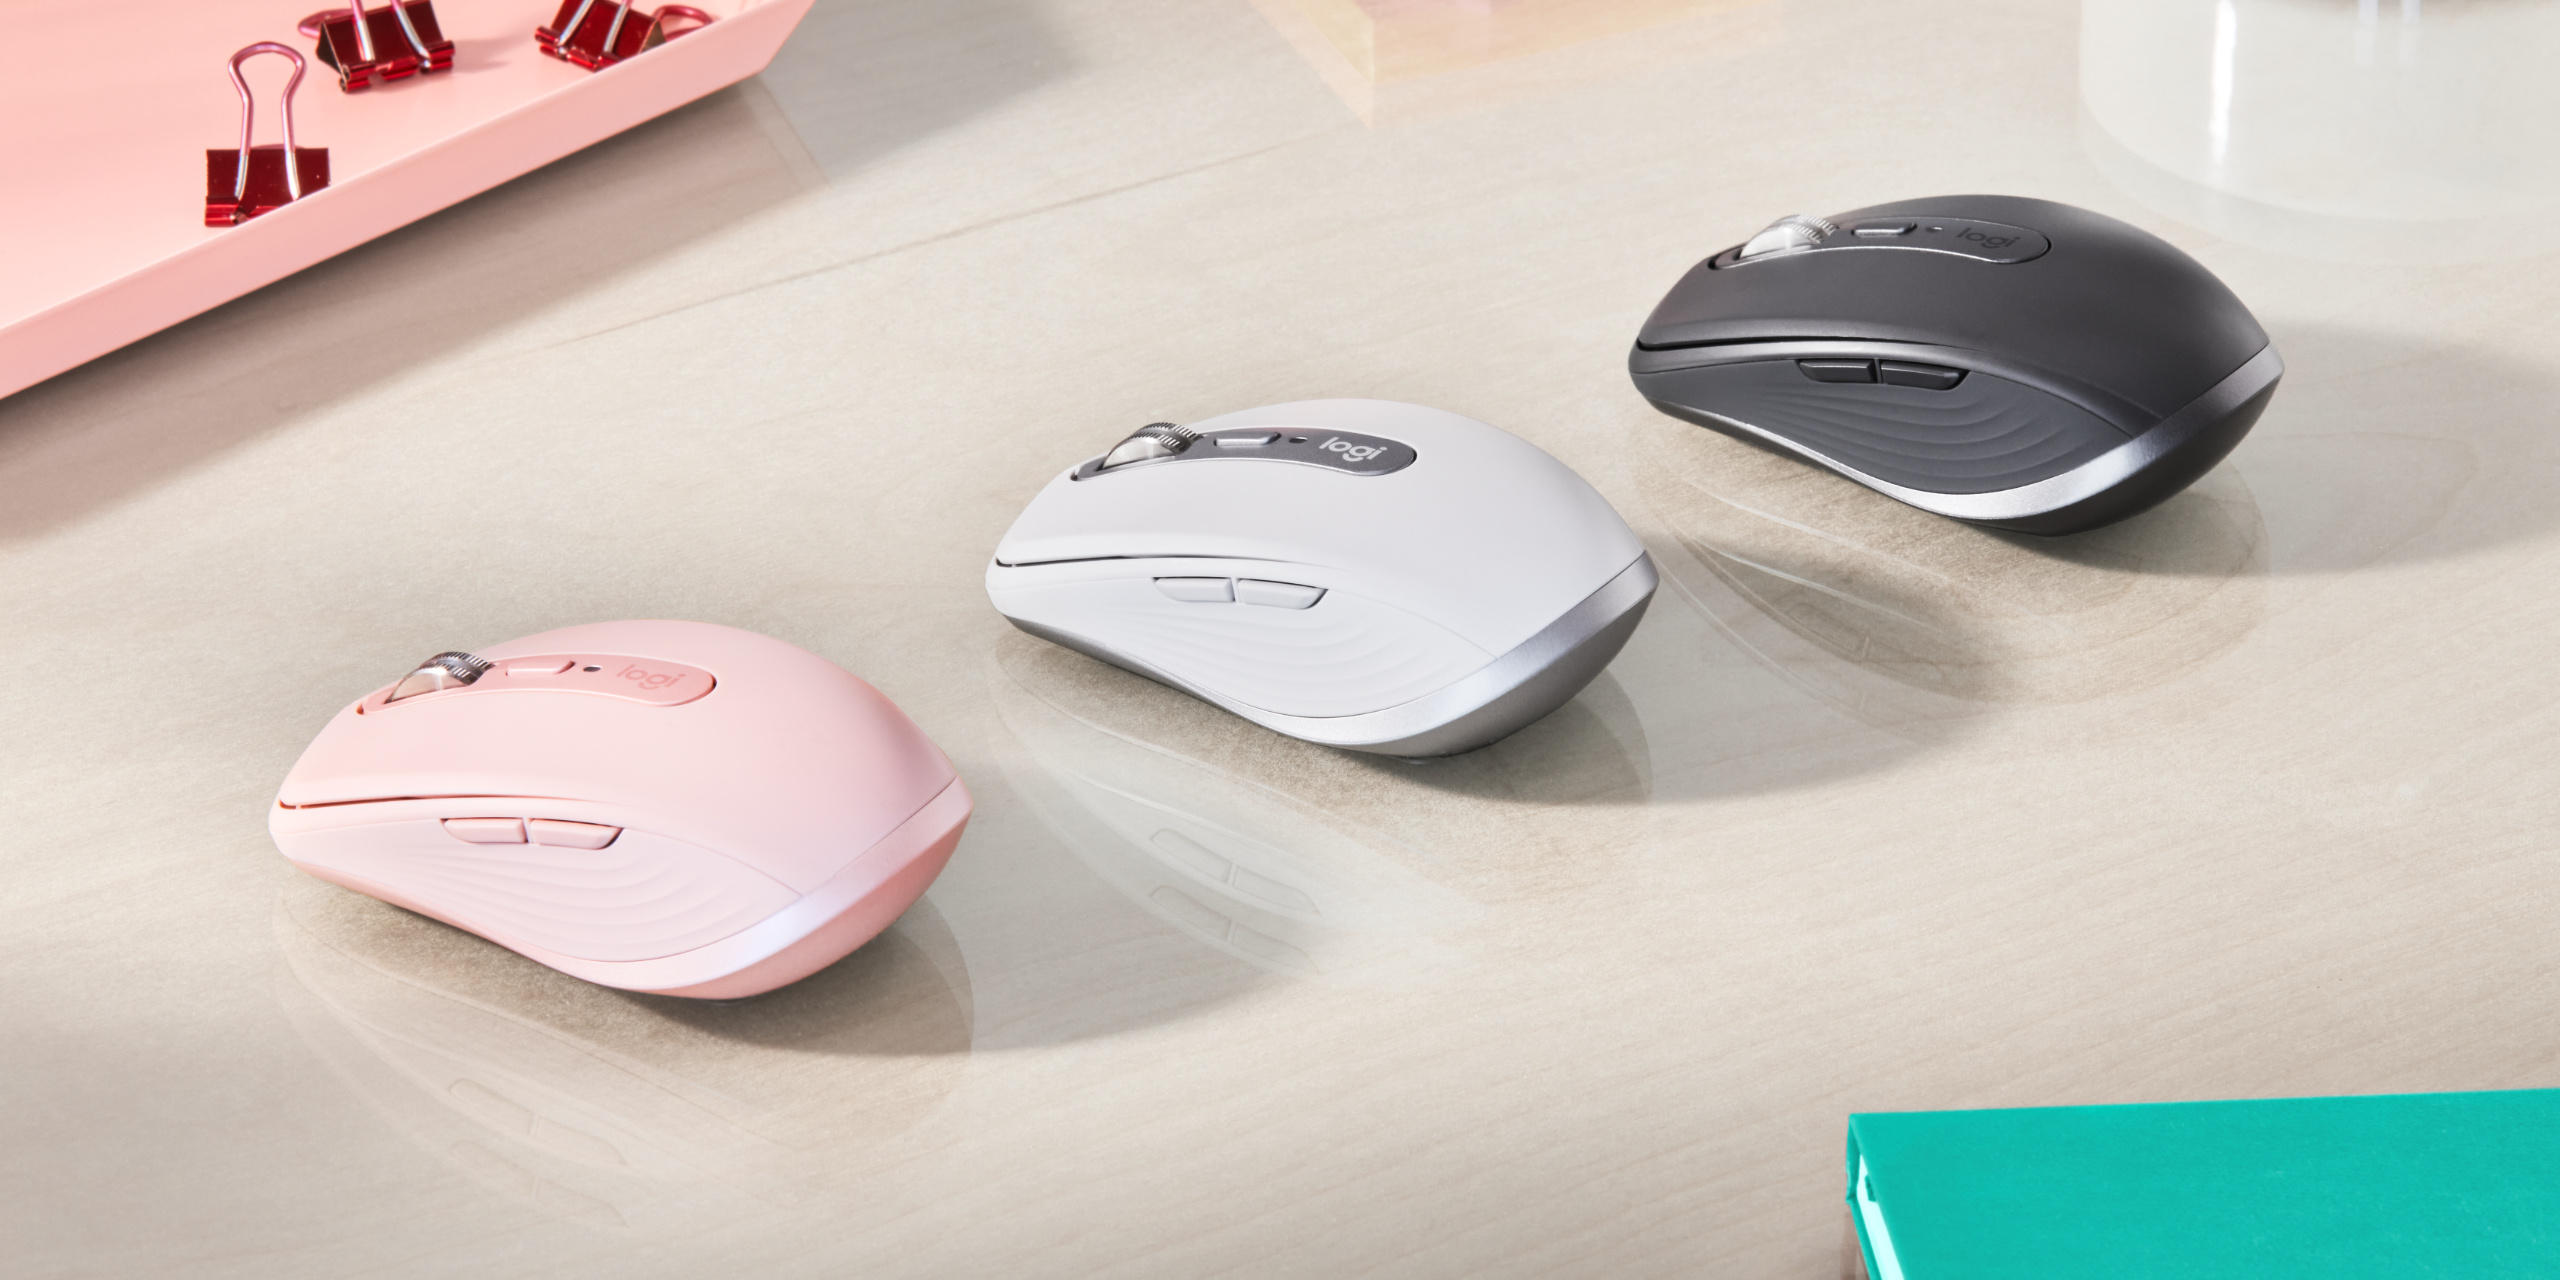 Logitech's new MX Anywhere 3 mouse for Mac looks like a great WFH companion  - 9to5Mac